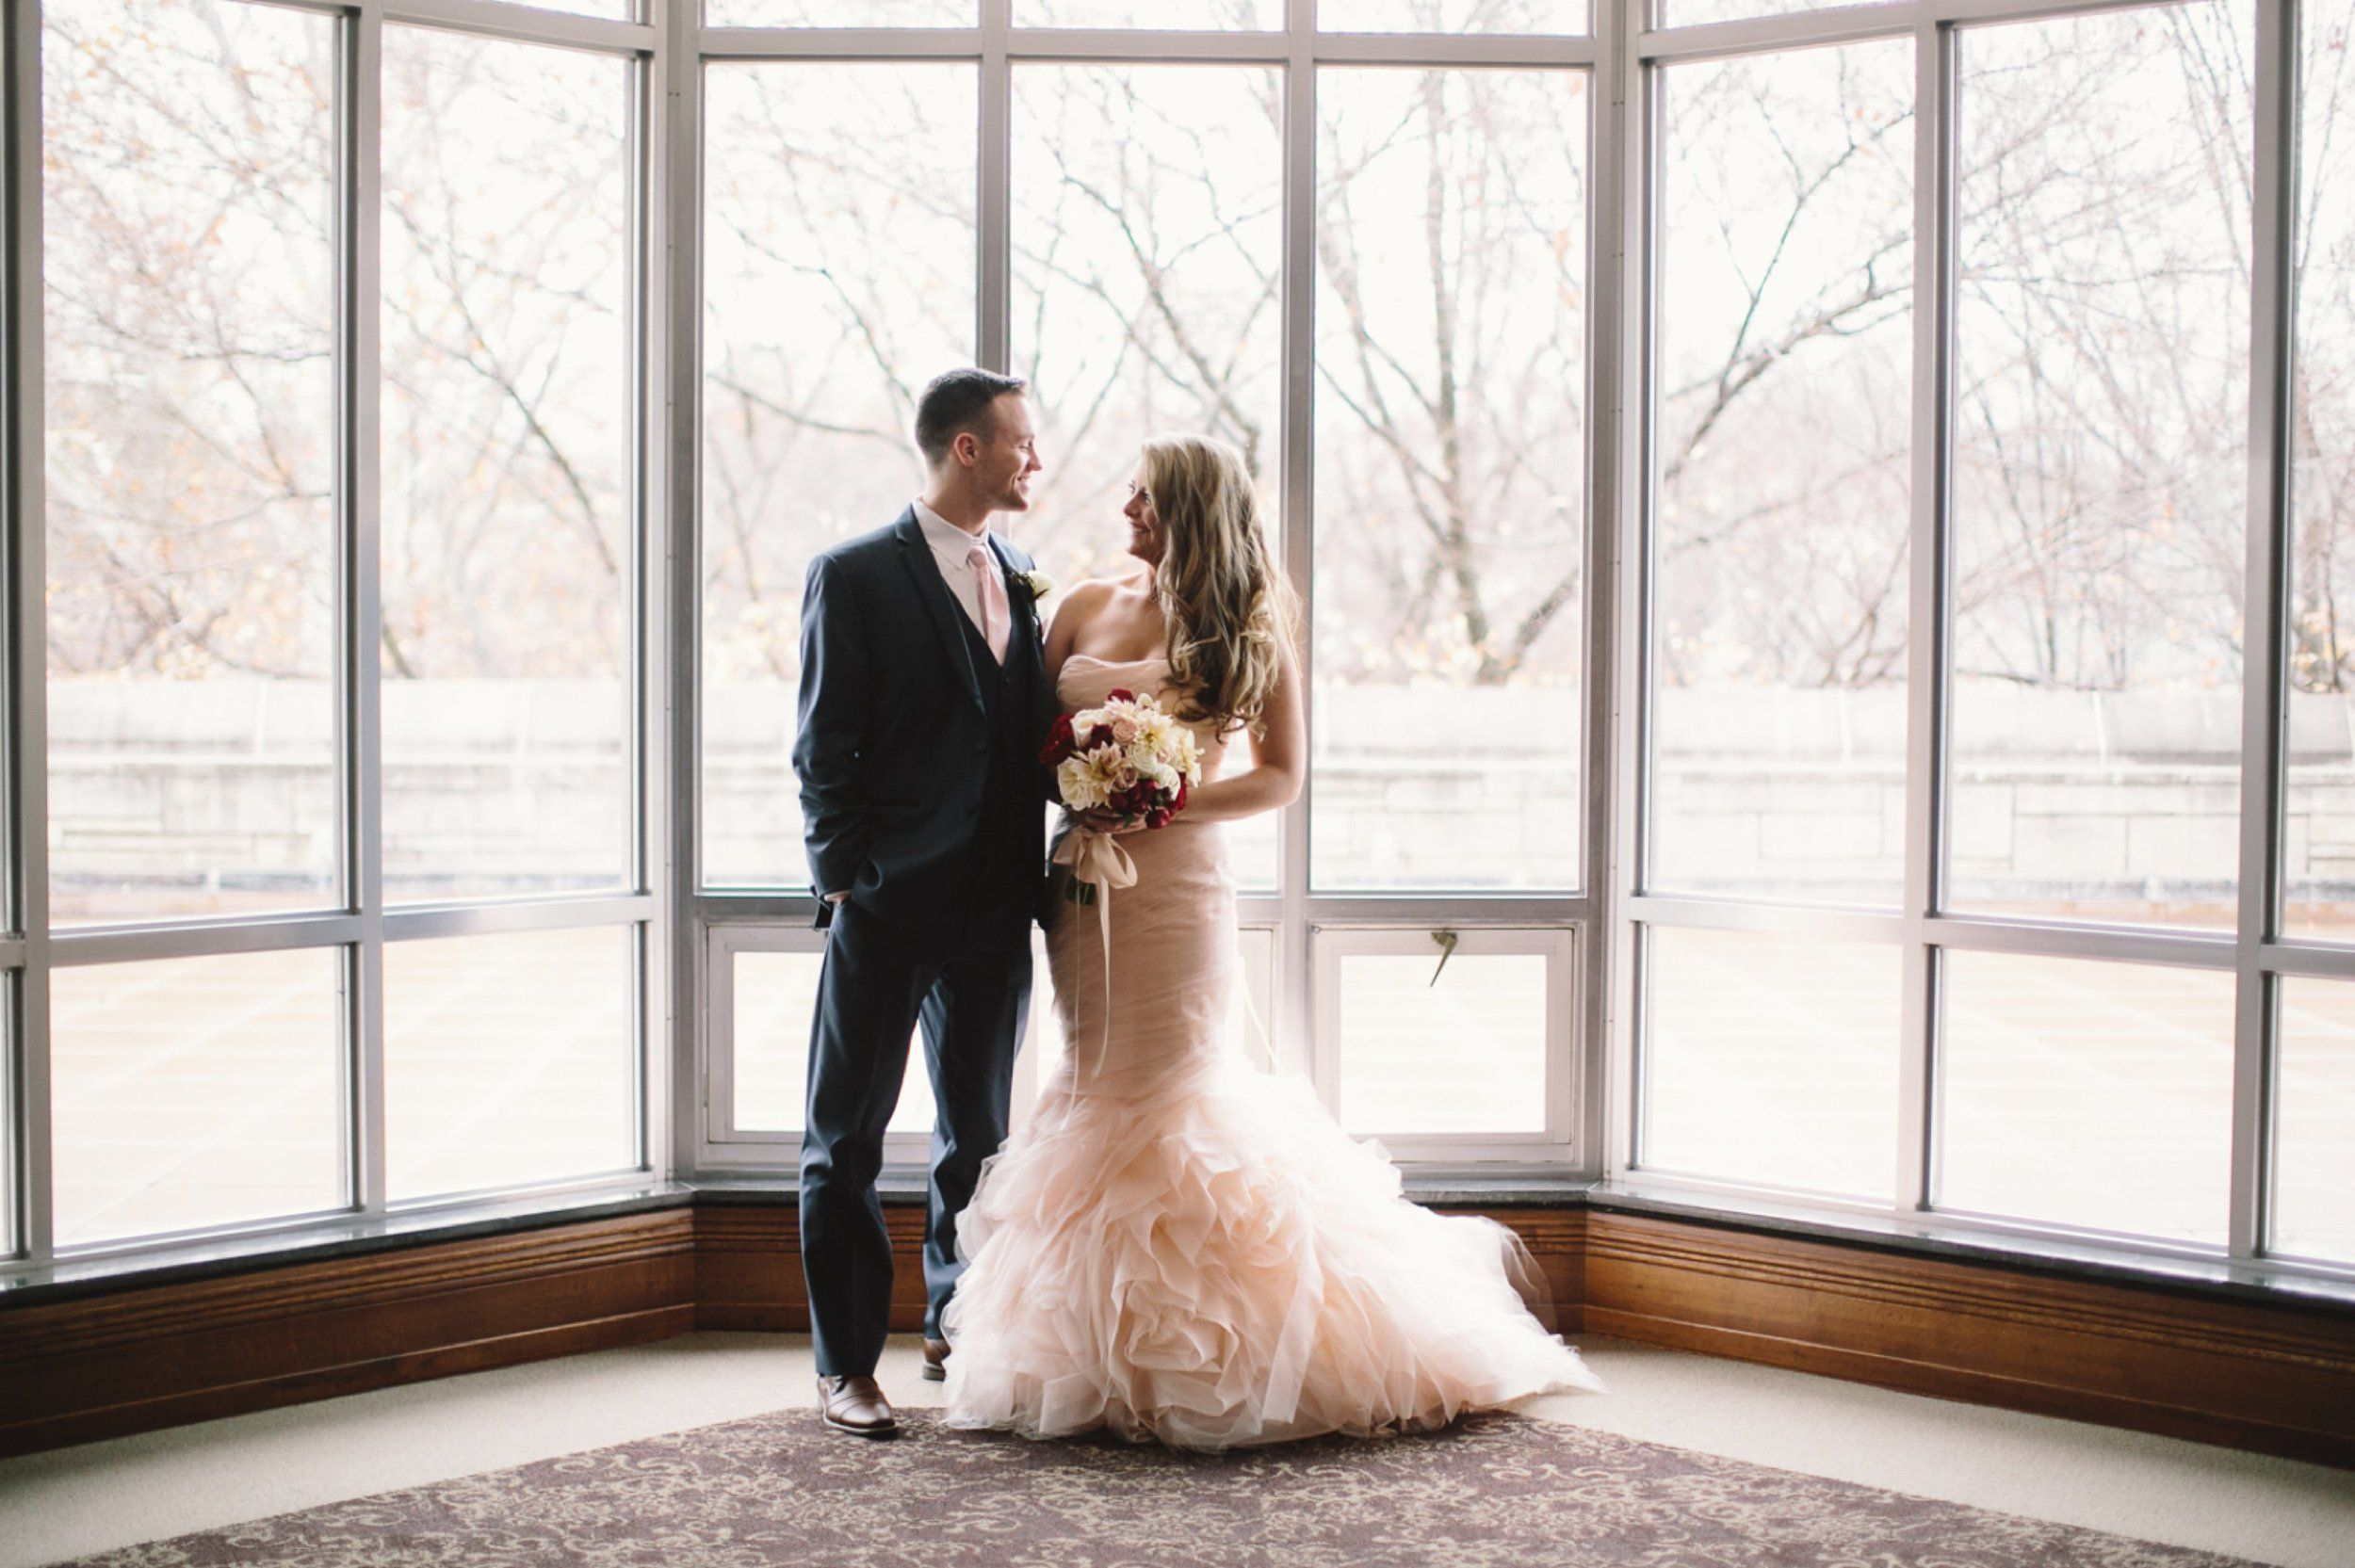 You don't need to worry about rain on your wedding day. You can still have beautiful photos indoors. Indiana University Wedding